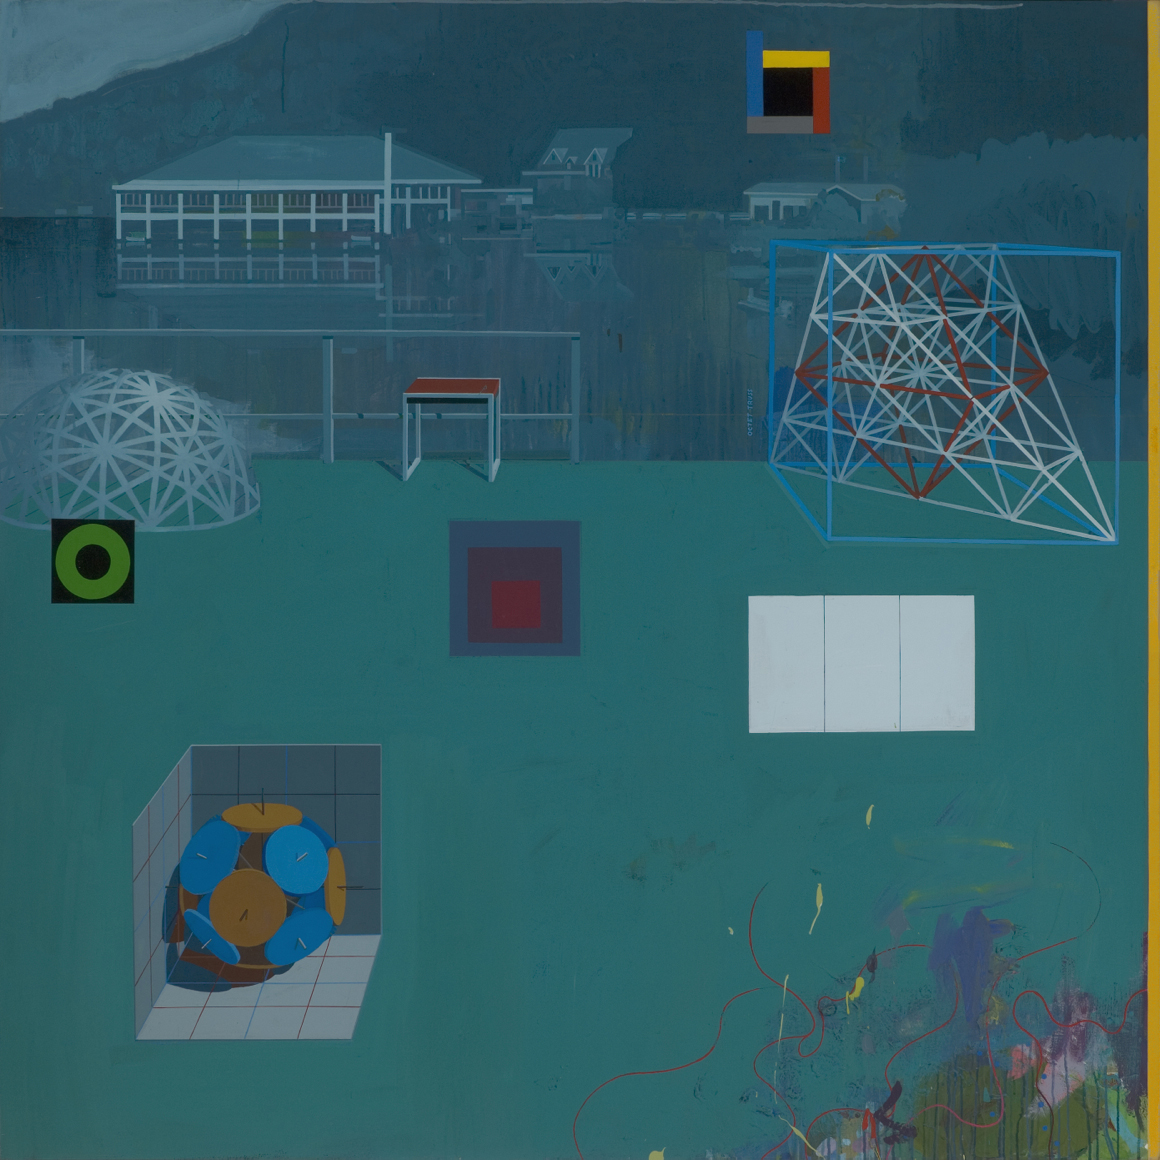 <p><em>Black Mountain College</em><span class='media'>acrylic on canvas</span>70 x 70in<br>2013<br><a class='inquire' href='mailto:info@gildargallery.com?subject=Artwork Inquiry CRIC0009&body=I am interested in finding out more about Black Mountain College by Clark Richert'>Inquire</a></p>